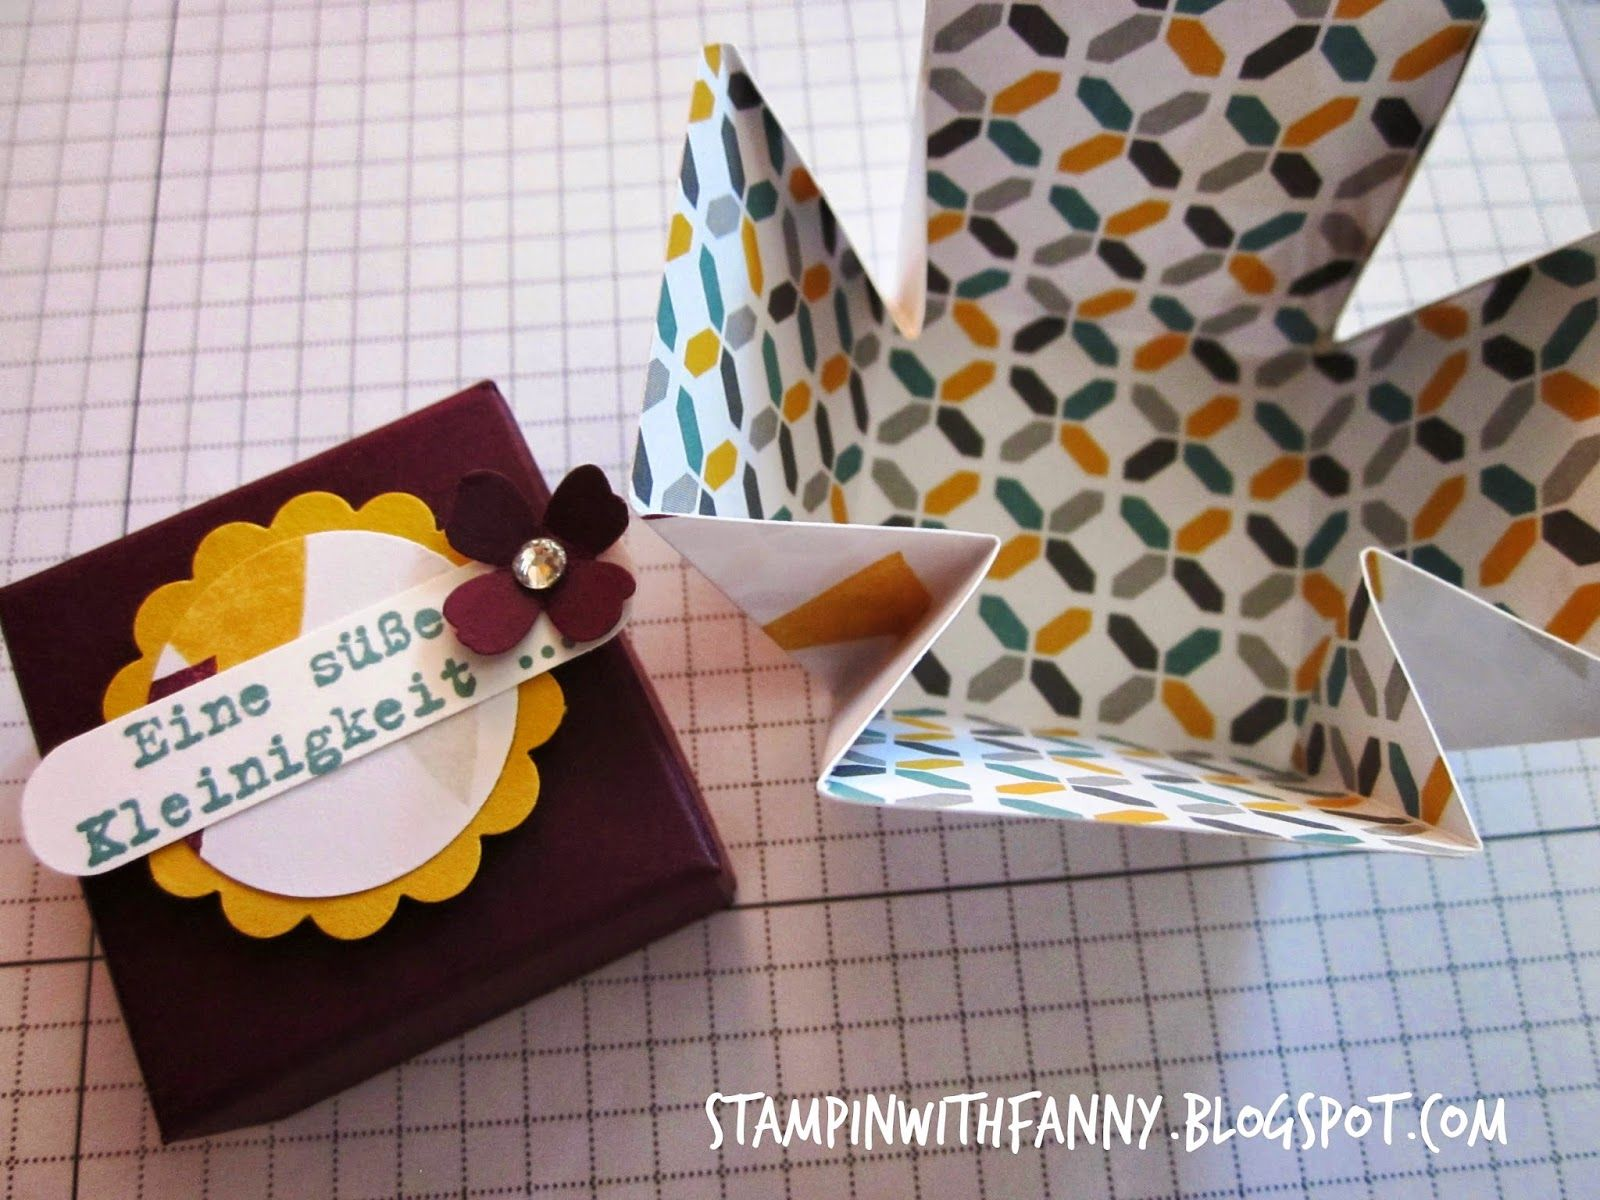 """stampin with fanny: Anleitung """"Mini-Exploding-Box"""""""